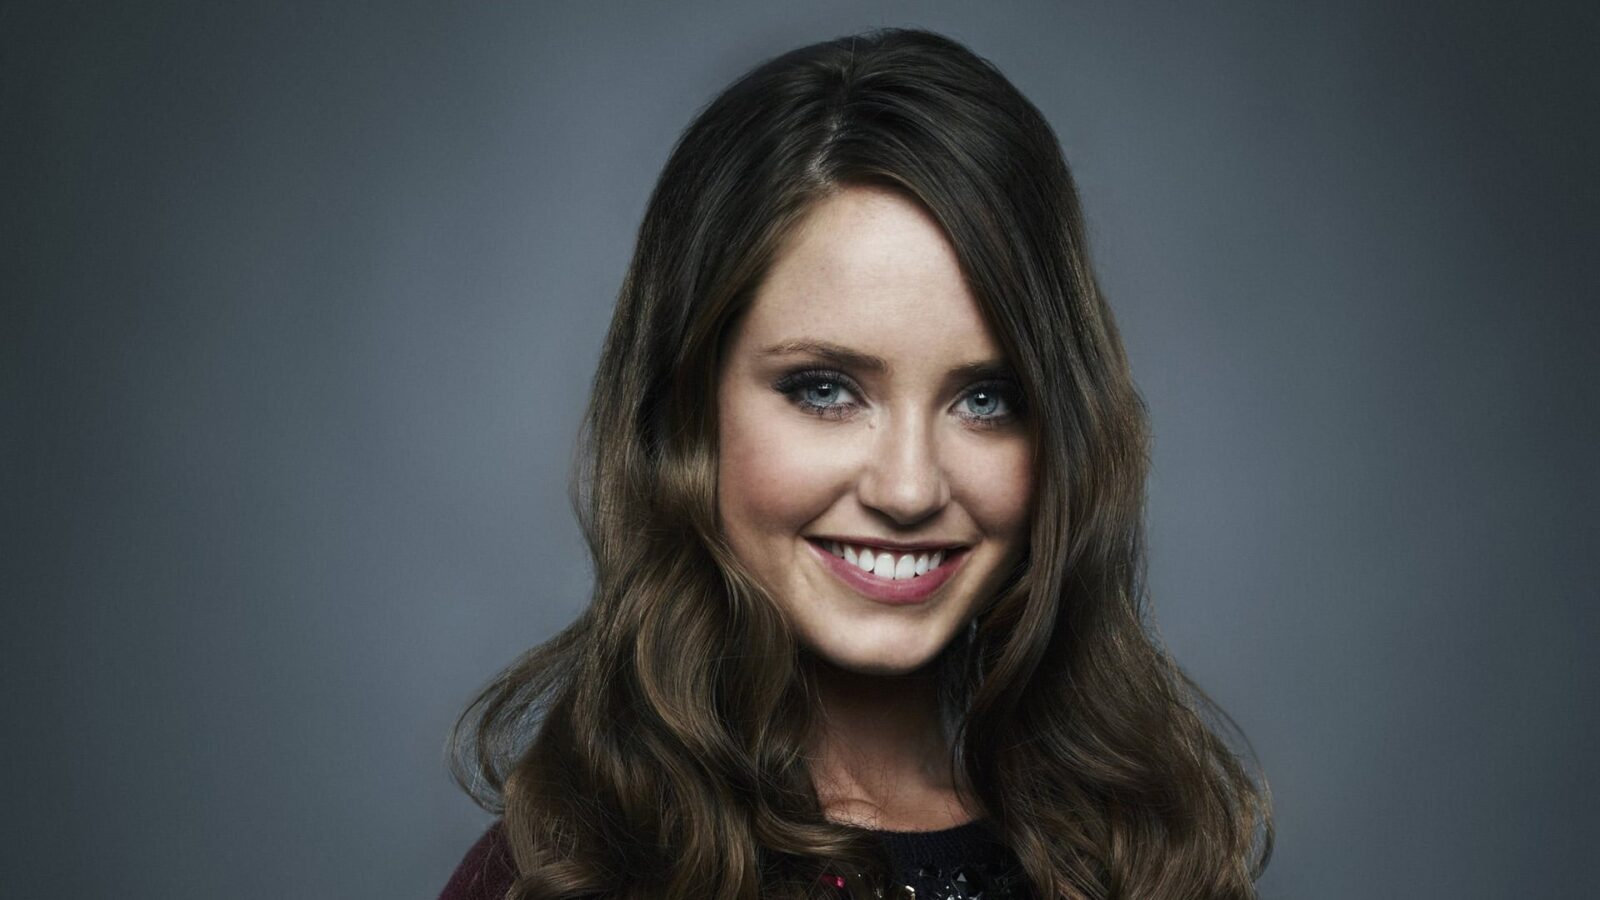 Merritt Patterson HD wallpapers free Download